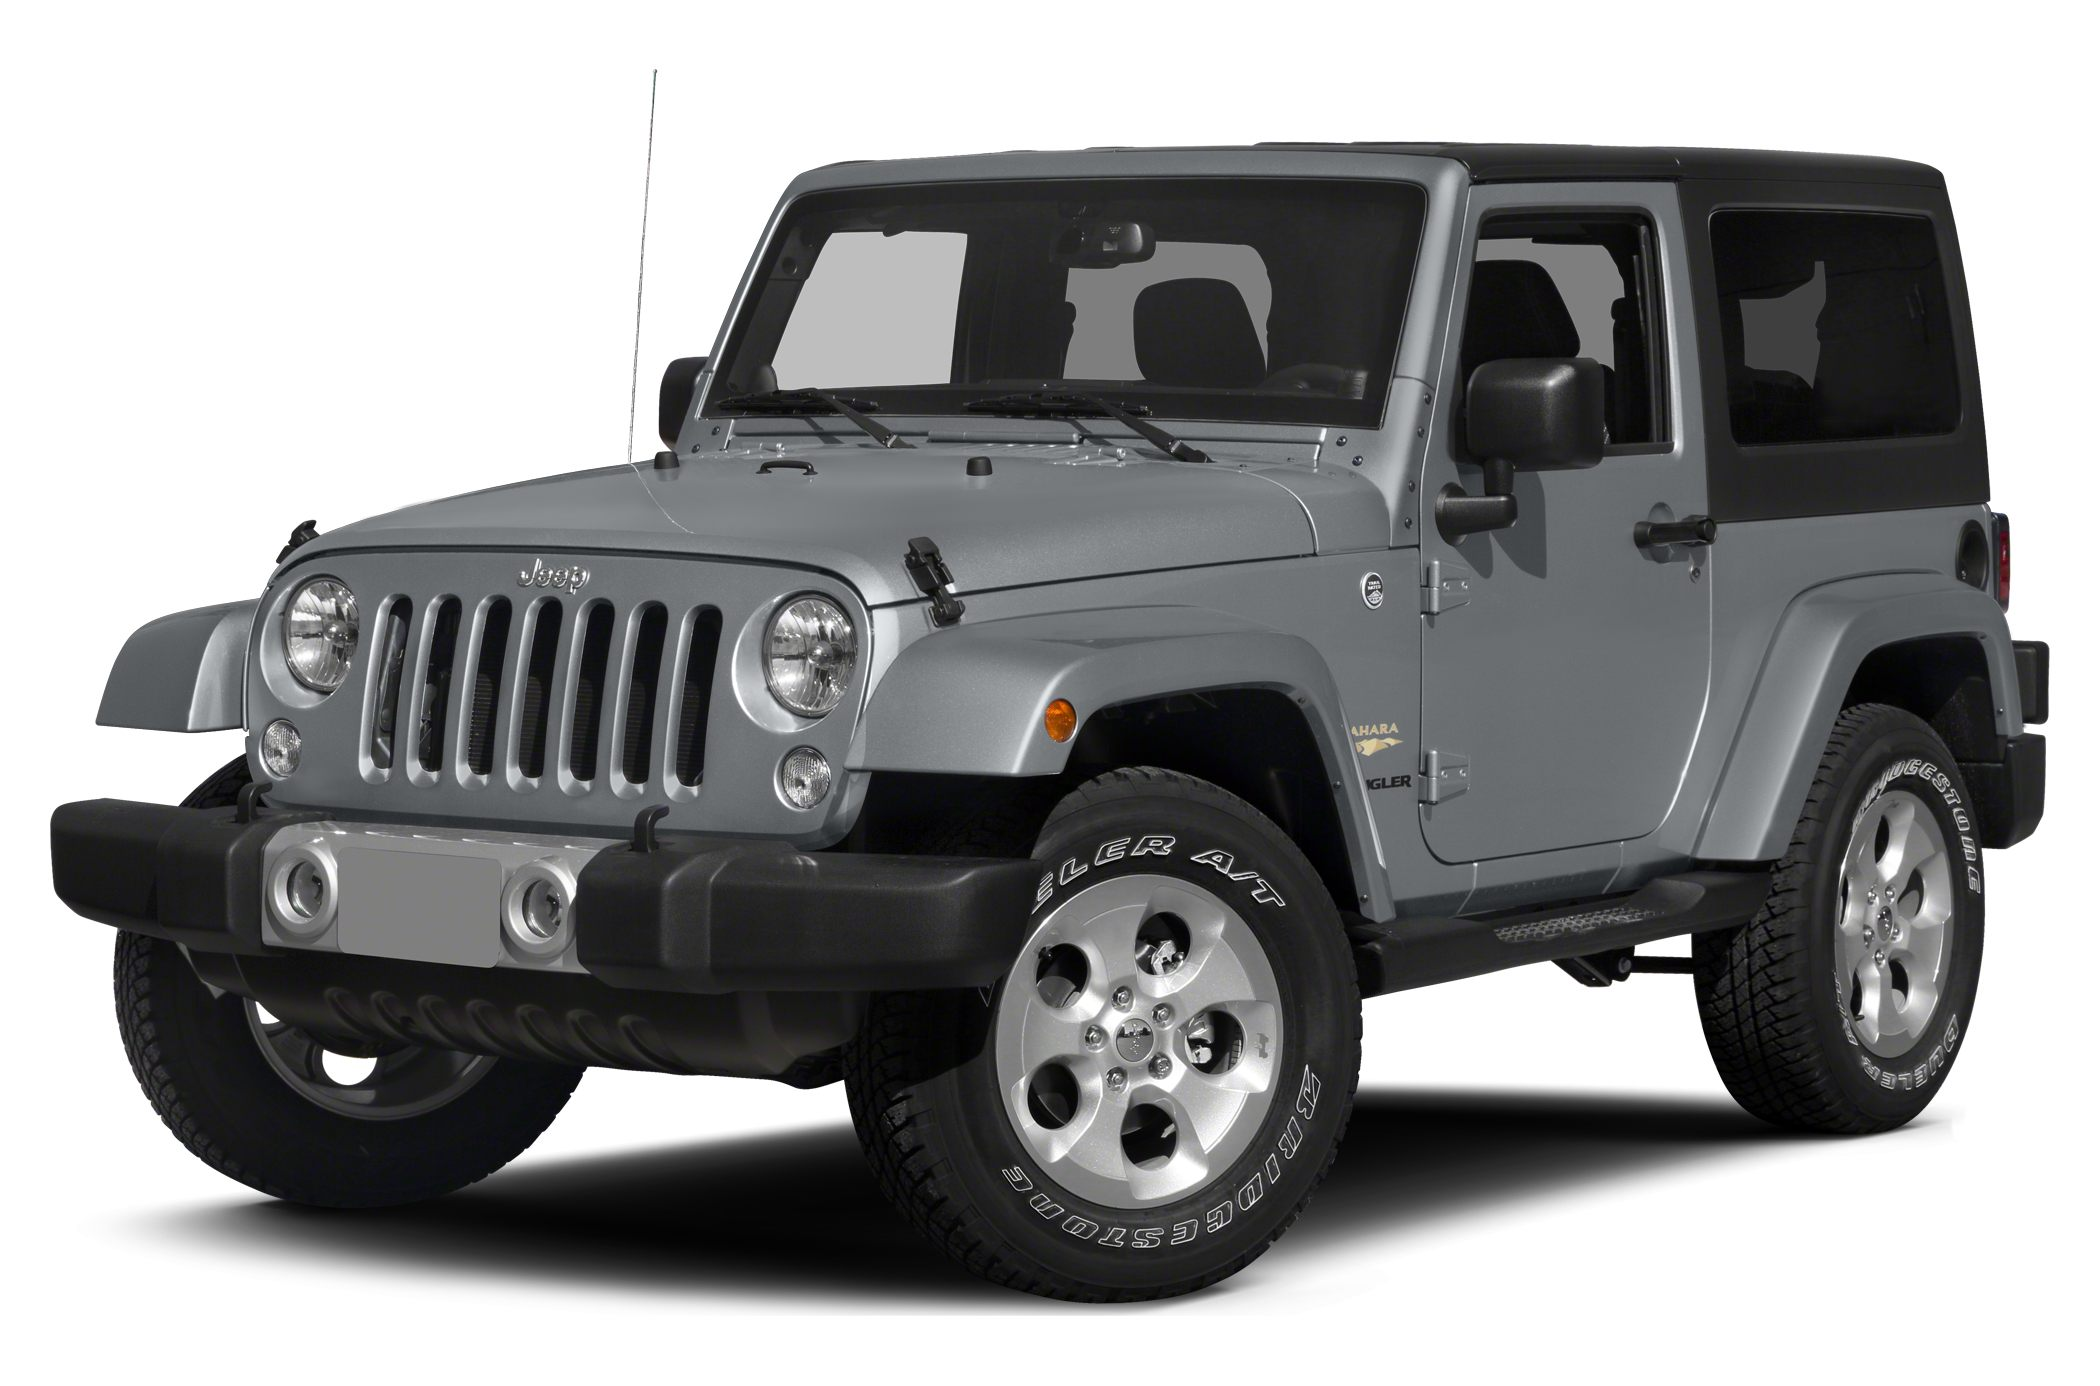 2015 Jeep Wrangler Sahara SUV for sale in Roanoke for $32,467 with 10 miles